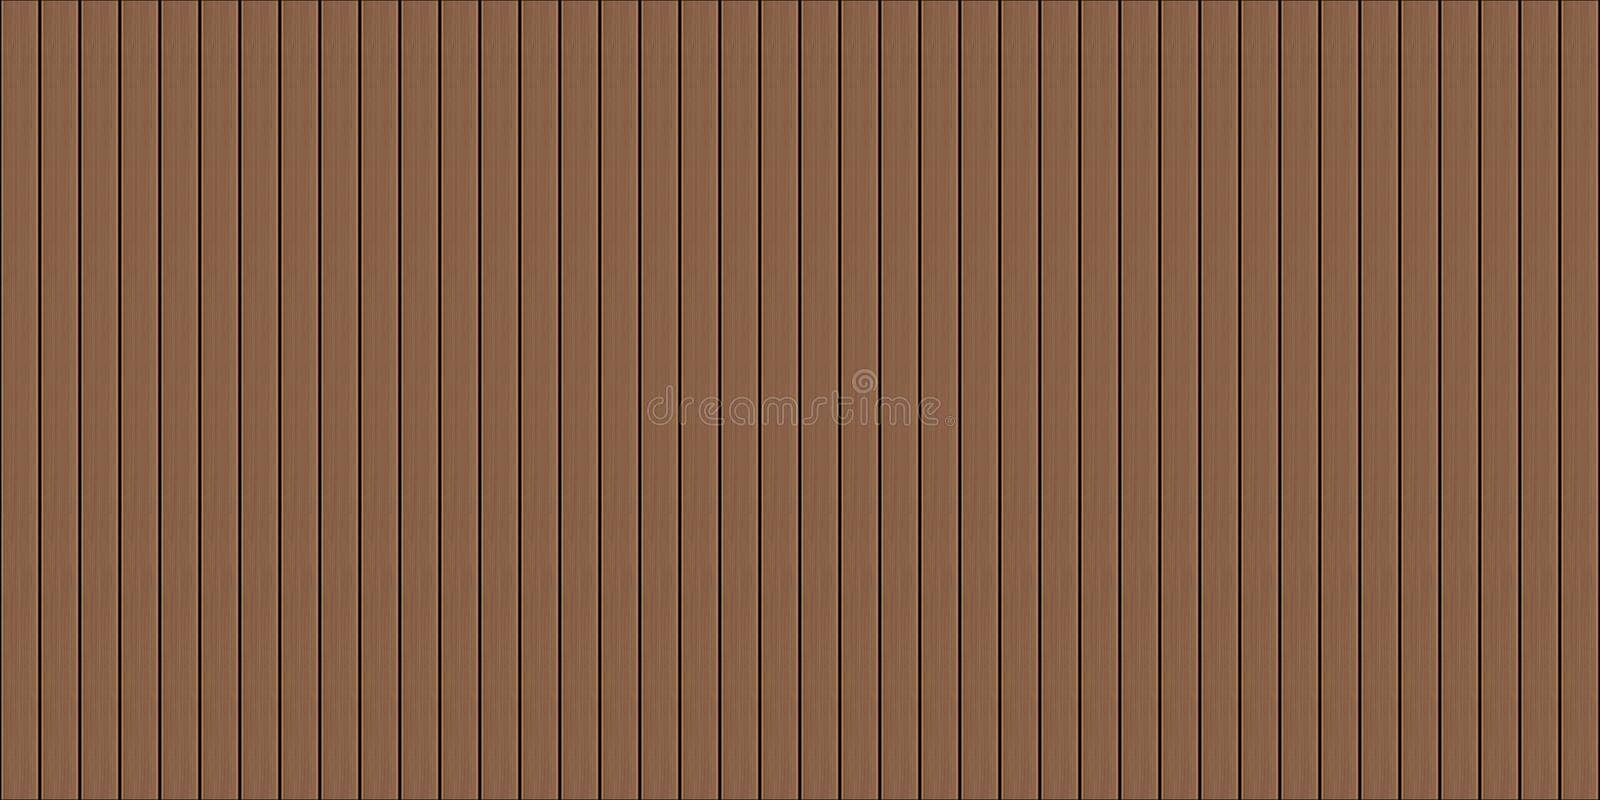 Wood Texture For Elevation : Wood decking seamless texture stock illustration